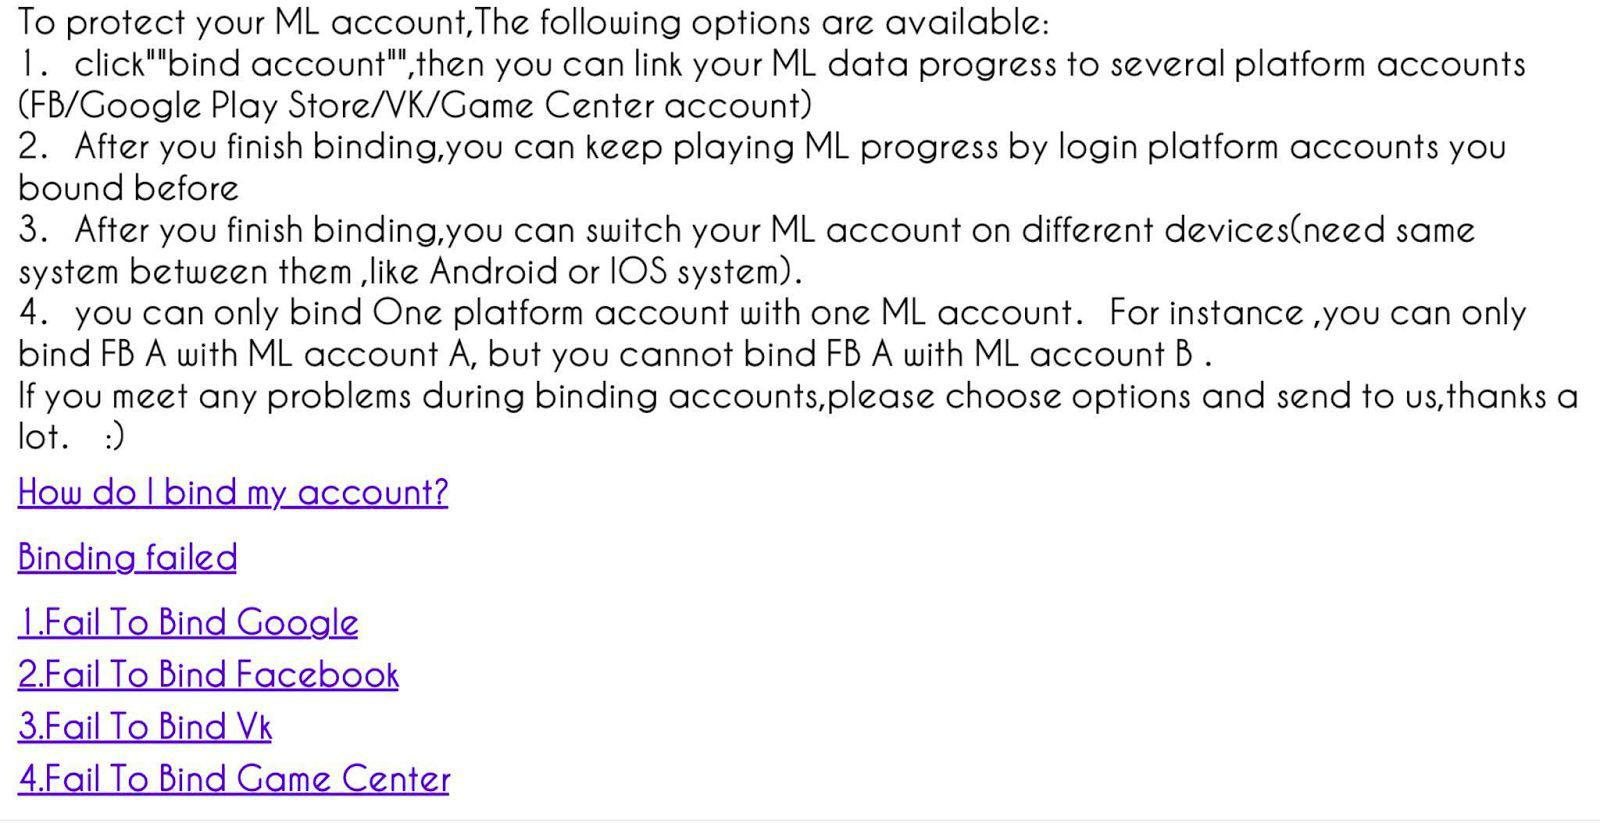 GUIDE] Account Problem - Mobile Legends: Bang Bang - Powered by Discuz!